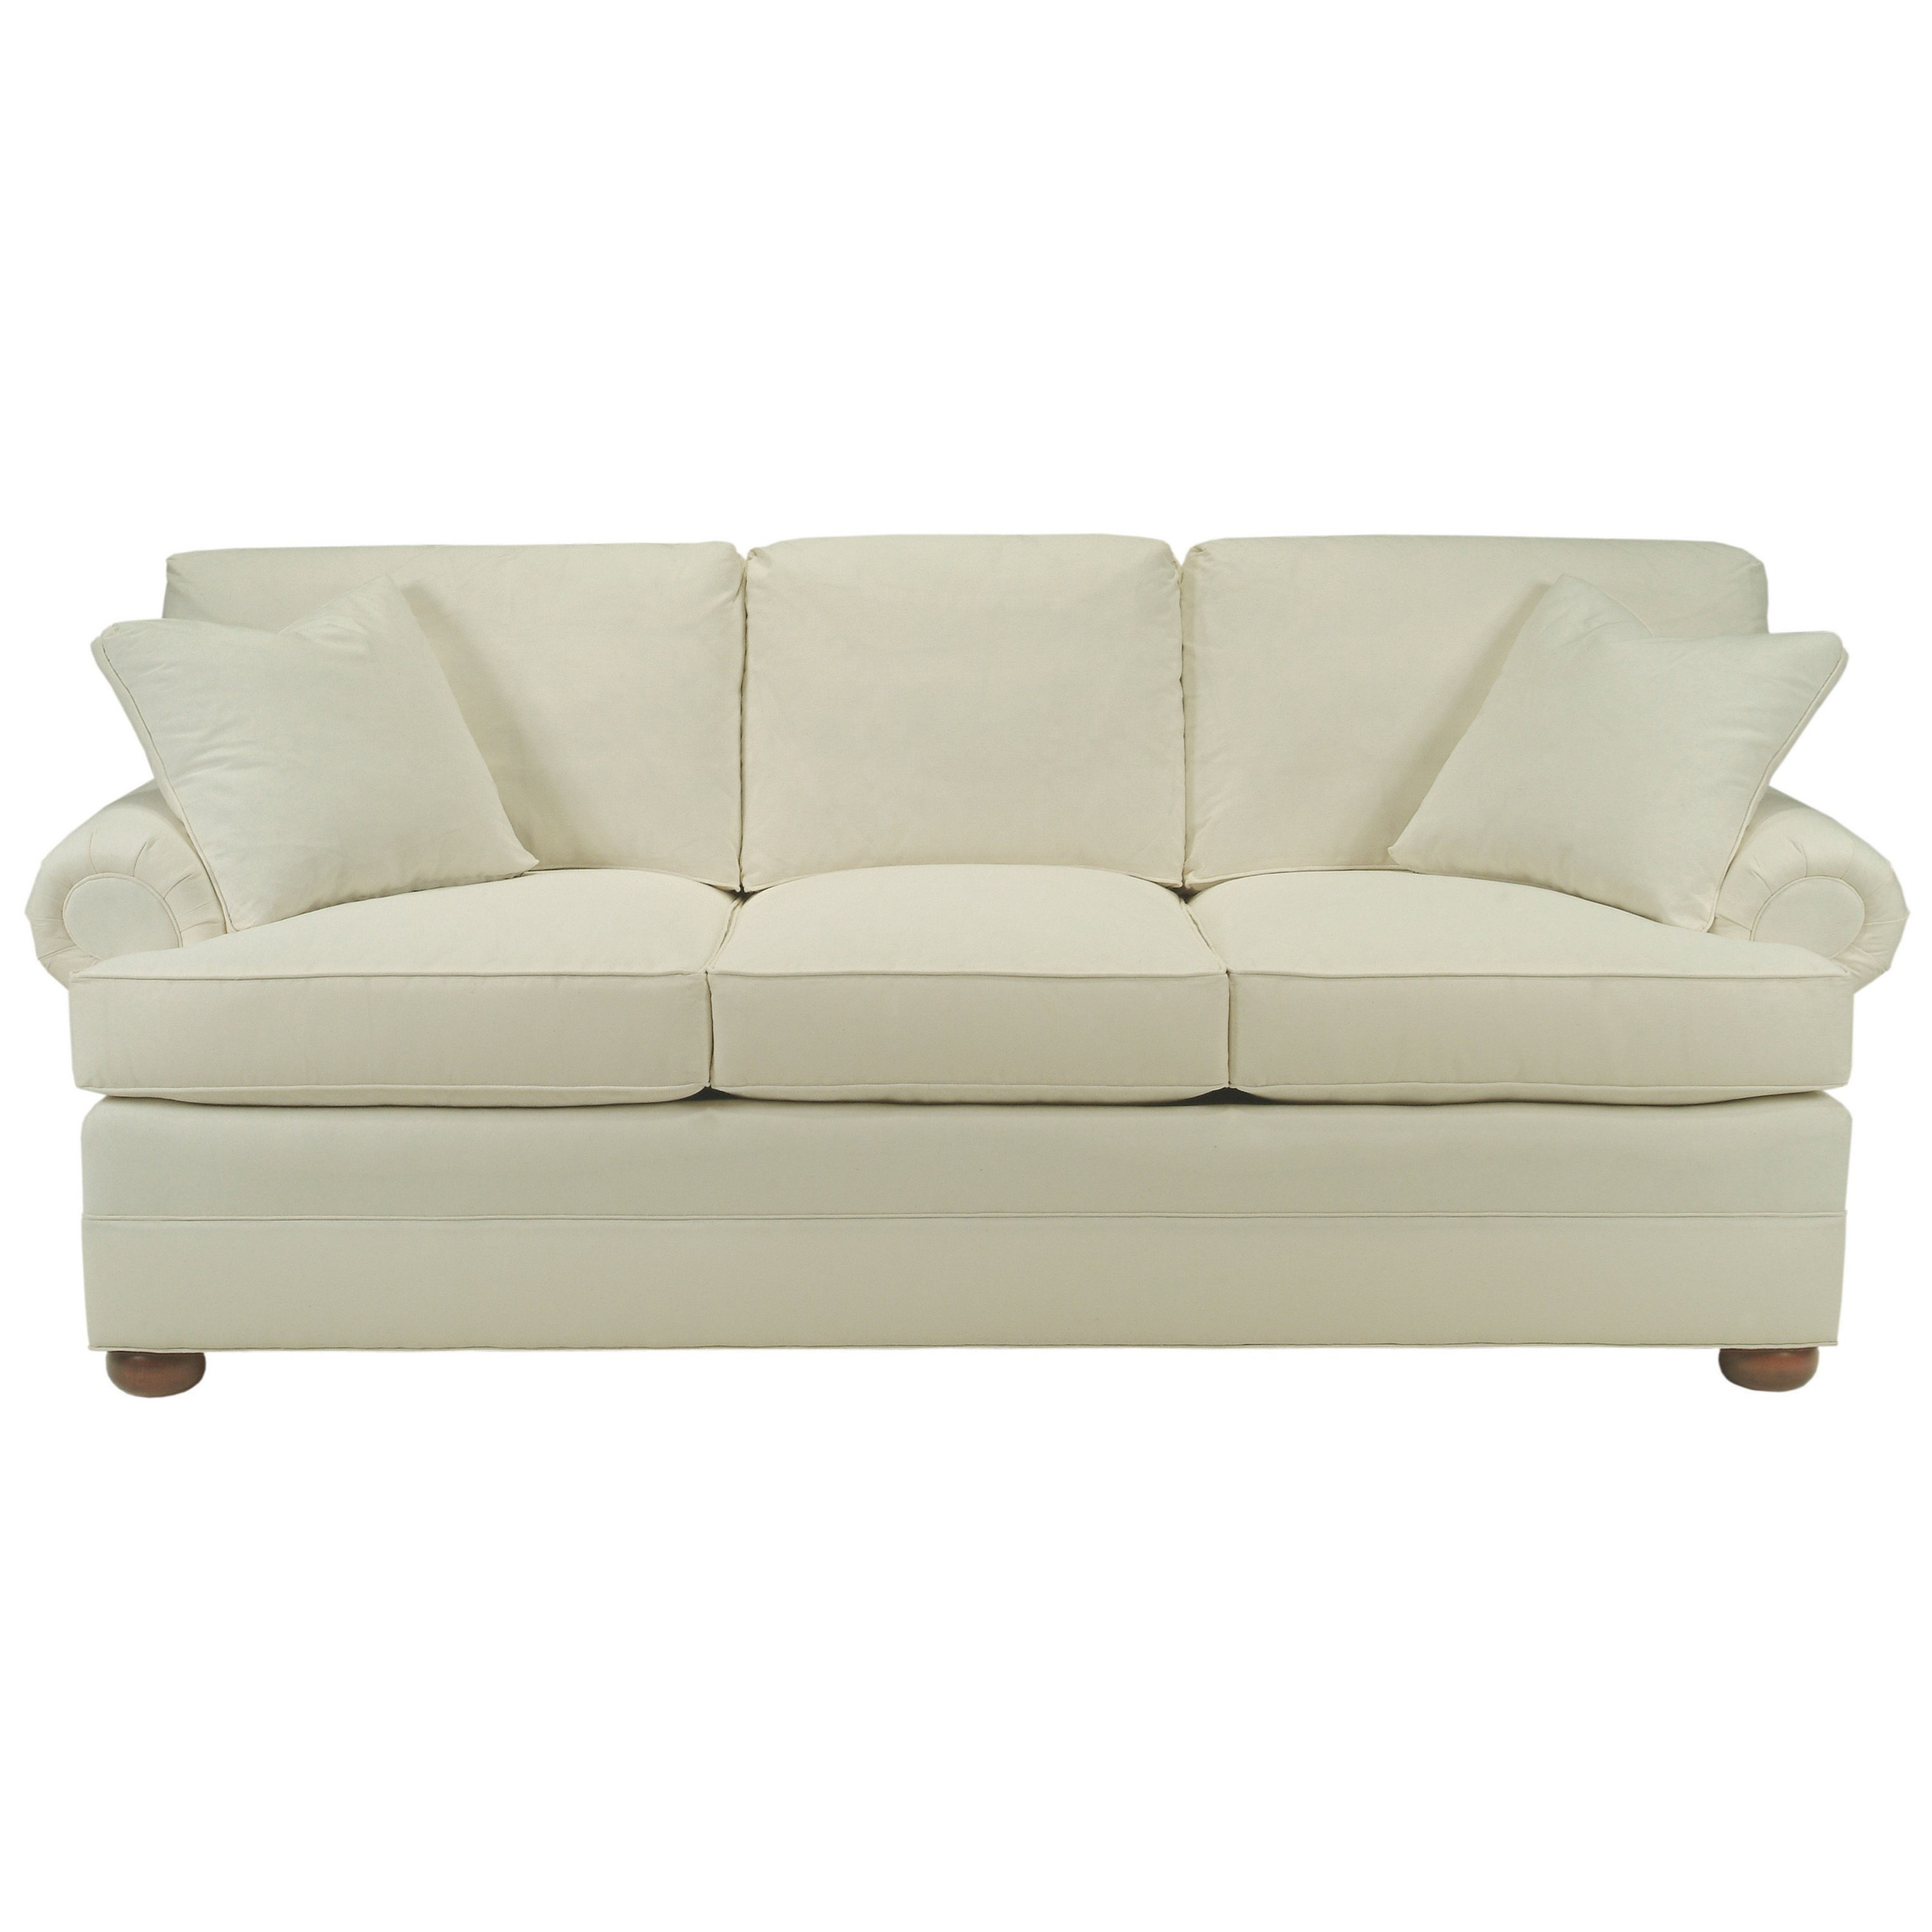 American Bungalow The Pines Sofa by Vanguard Furniture at Baer's Furniture